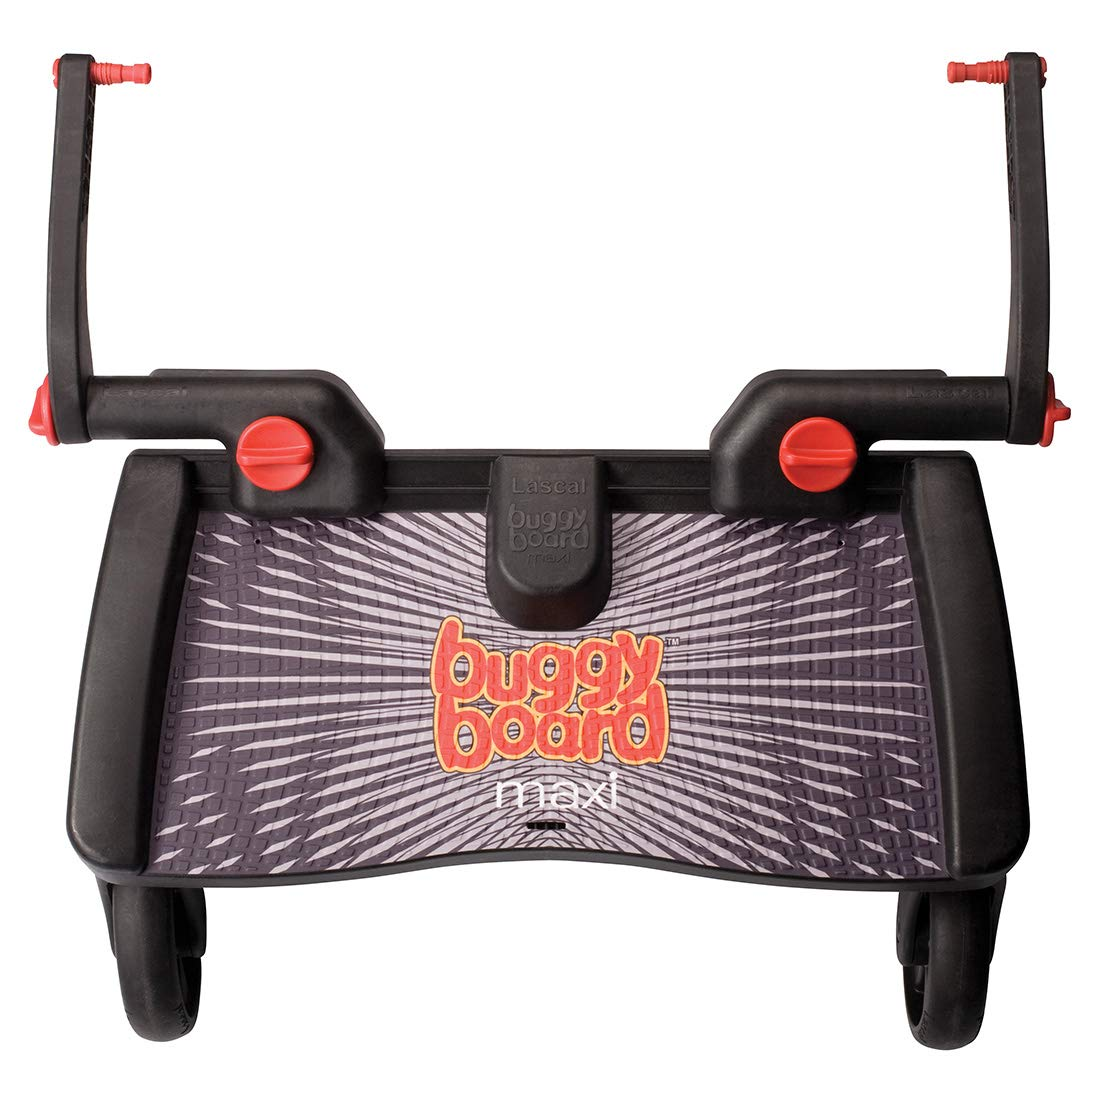 Lascal BuggyBoard Maxi, Black, Universal Ride-On Stroller Board, Fits More Strollers Than Any Other Board Using The Patented Universal Adapter, Quick ...